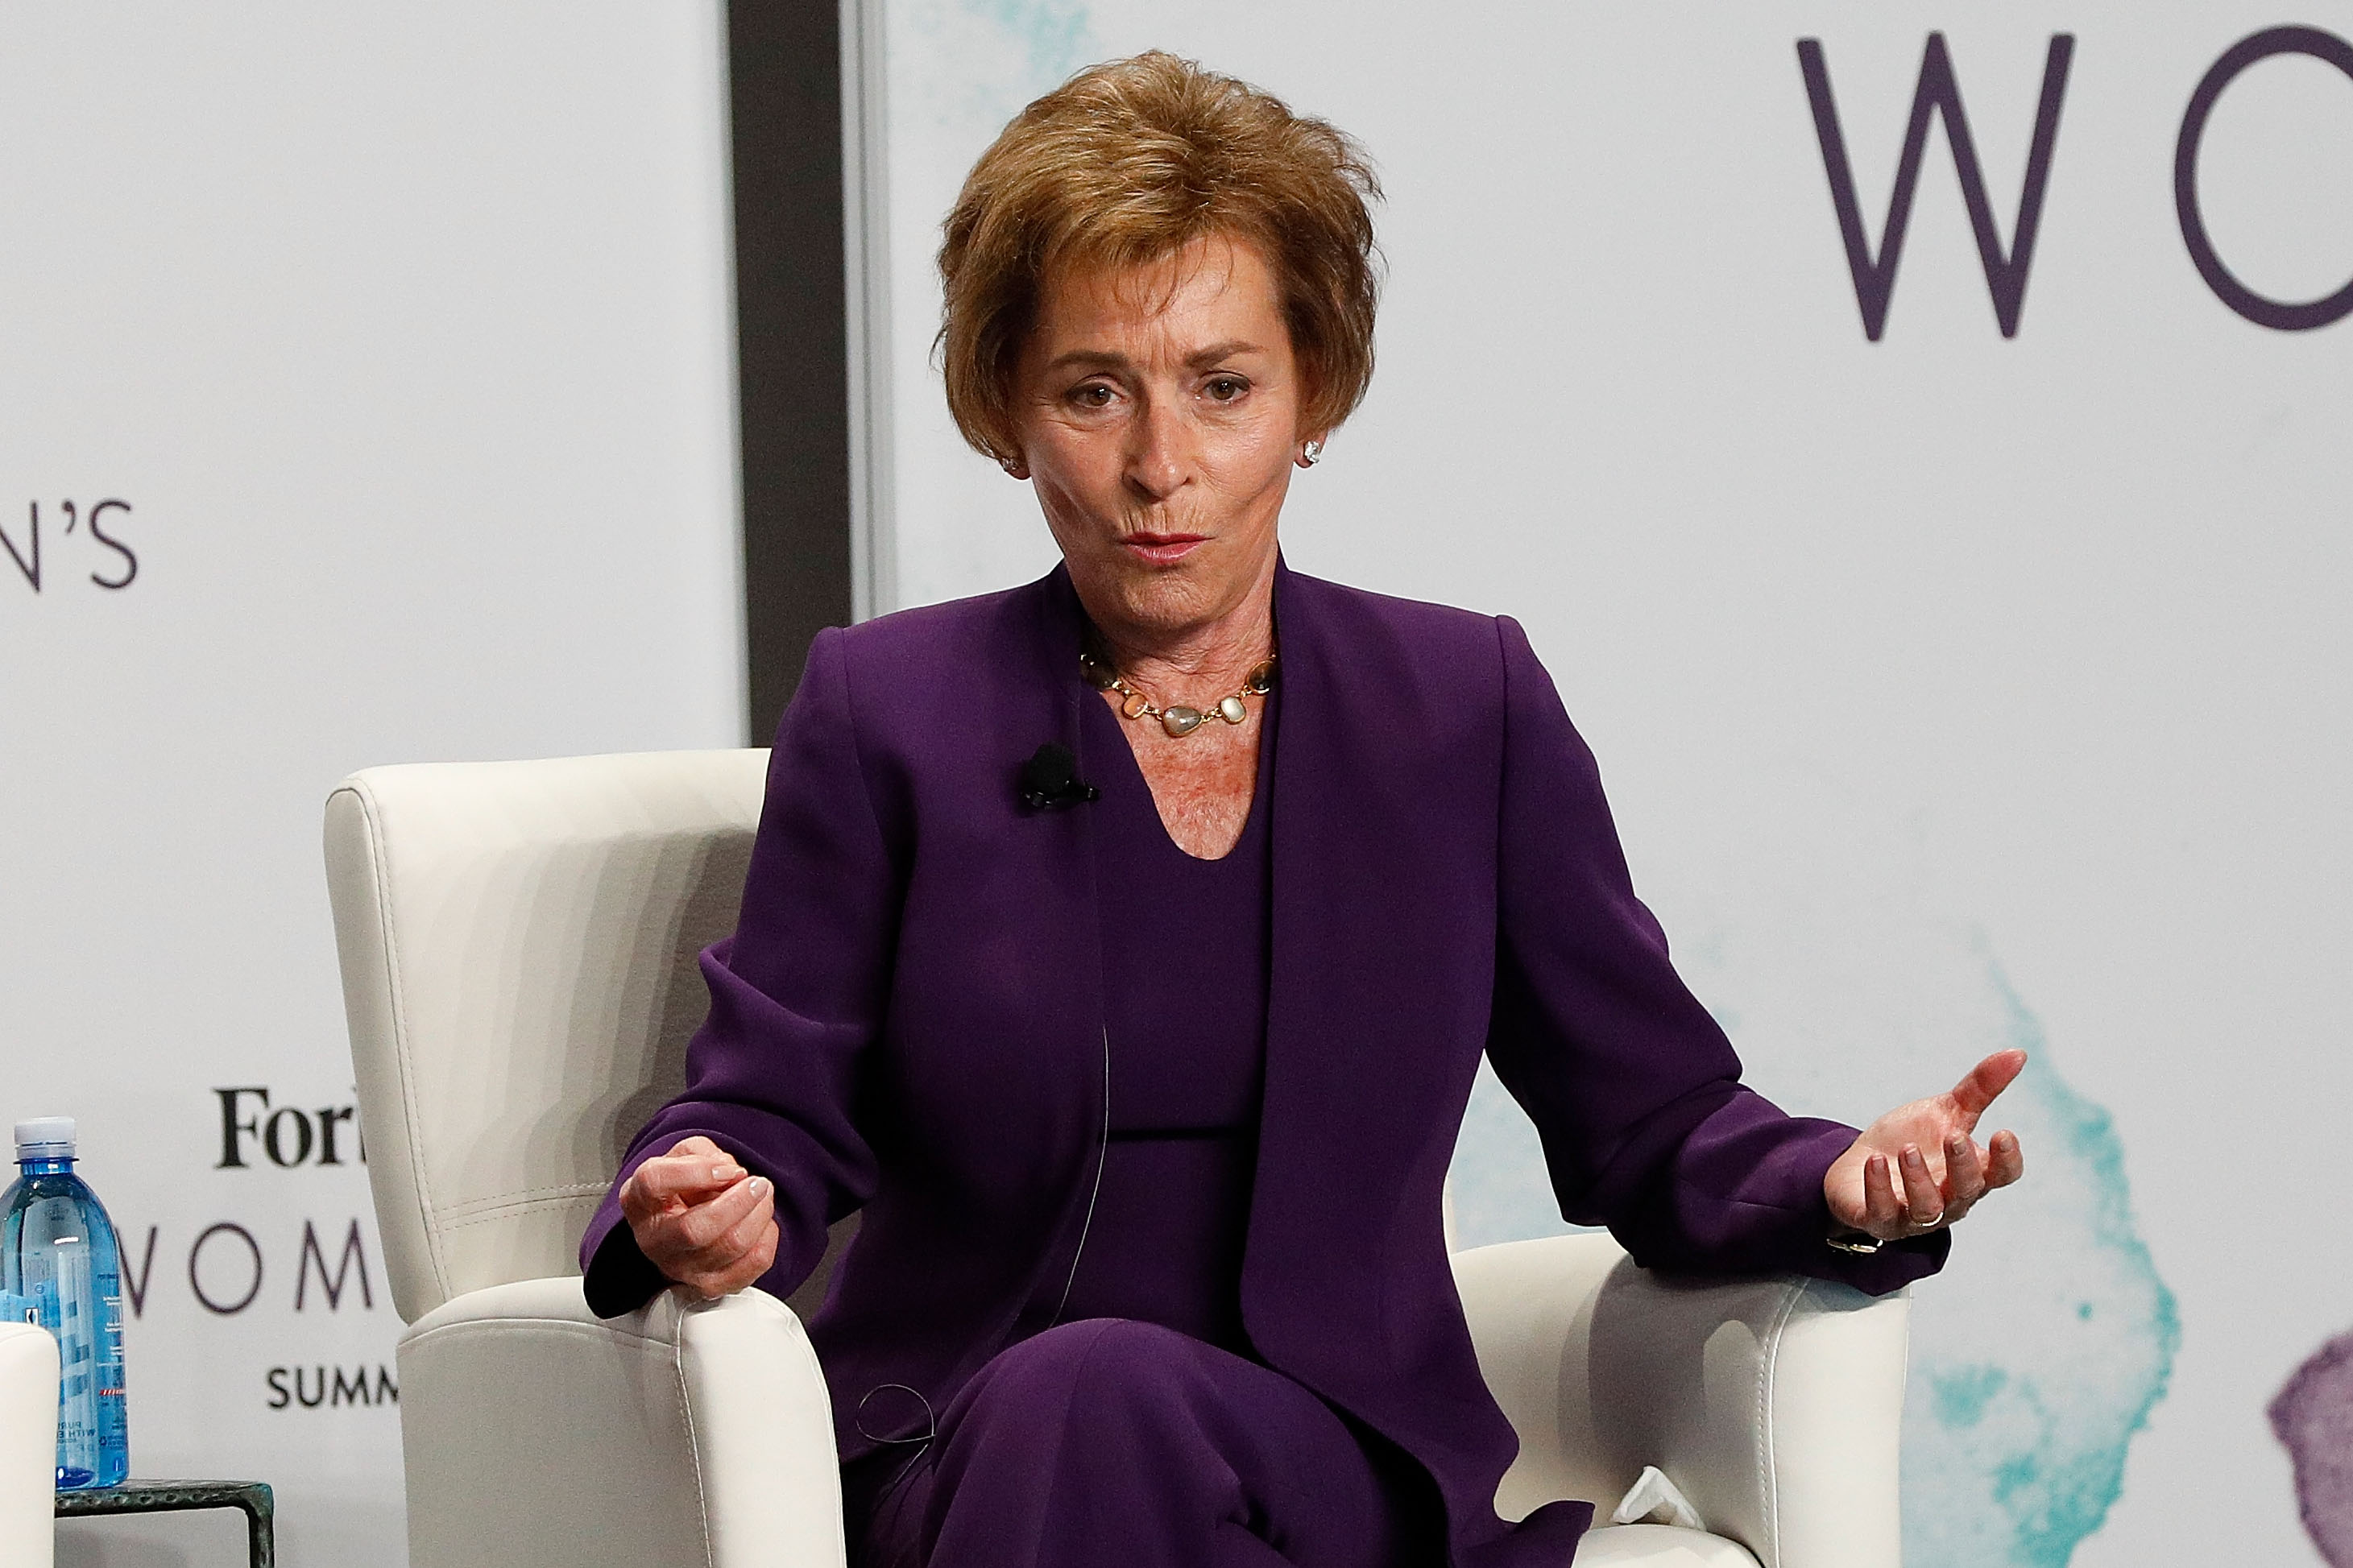 Judge Judy speaks during the 2017 Forbes Women's Summit at Spring Studios on June 13, 2017 in New York City   Photo: Getty Images